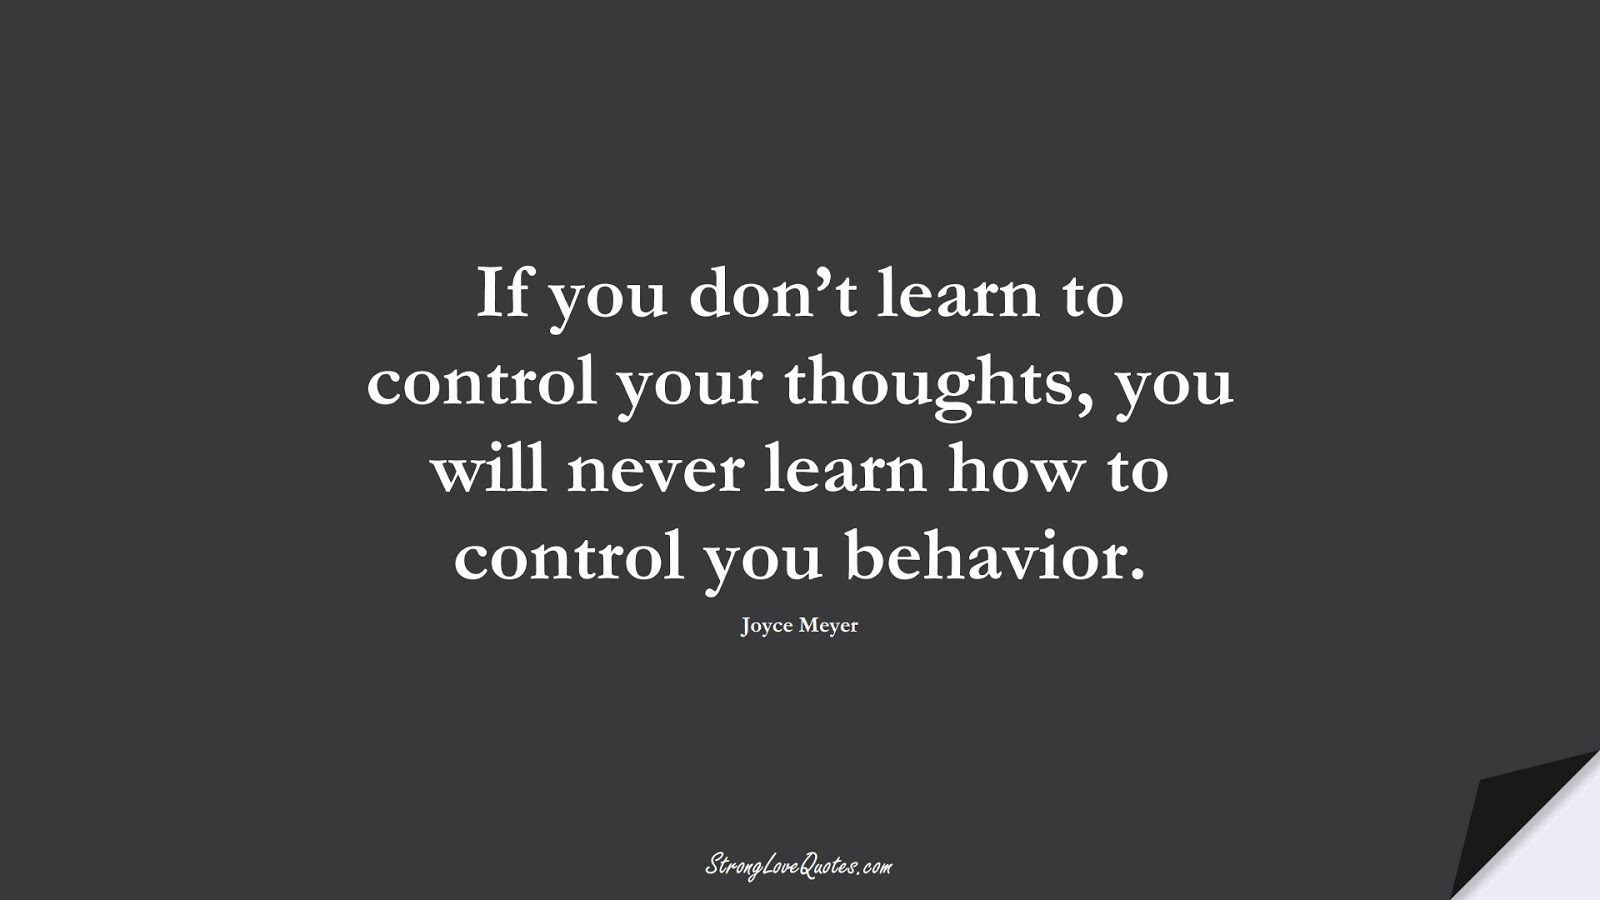 If you don't learn to control your thoughts, you will never learn how to control you behavior. (Joyce Meyer);  #LearningQuotes